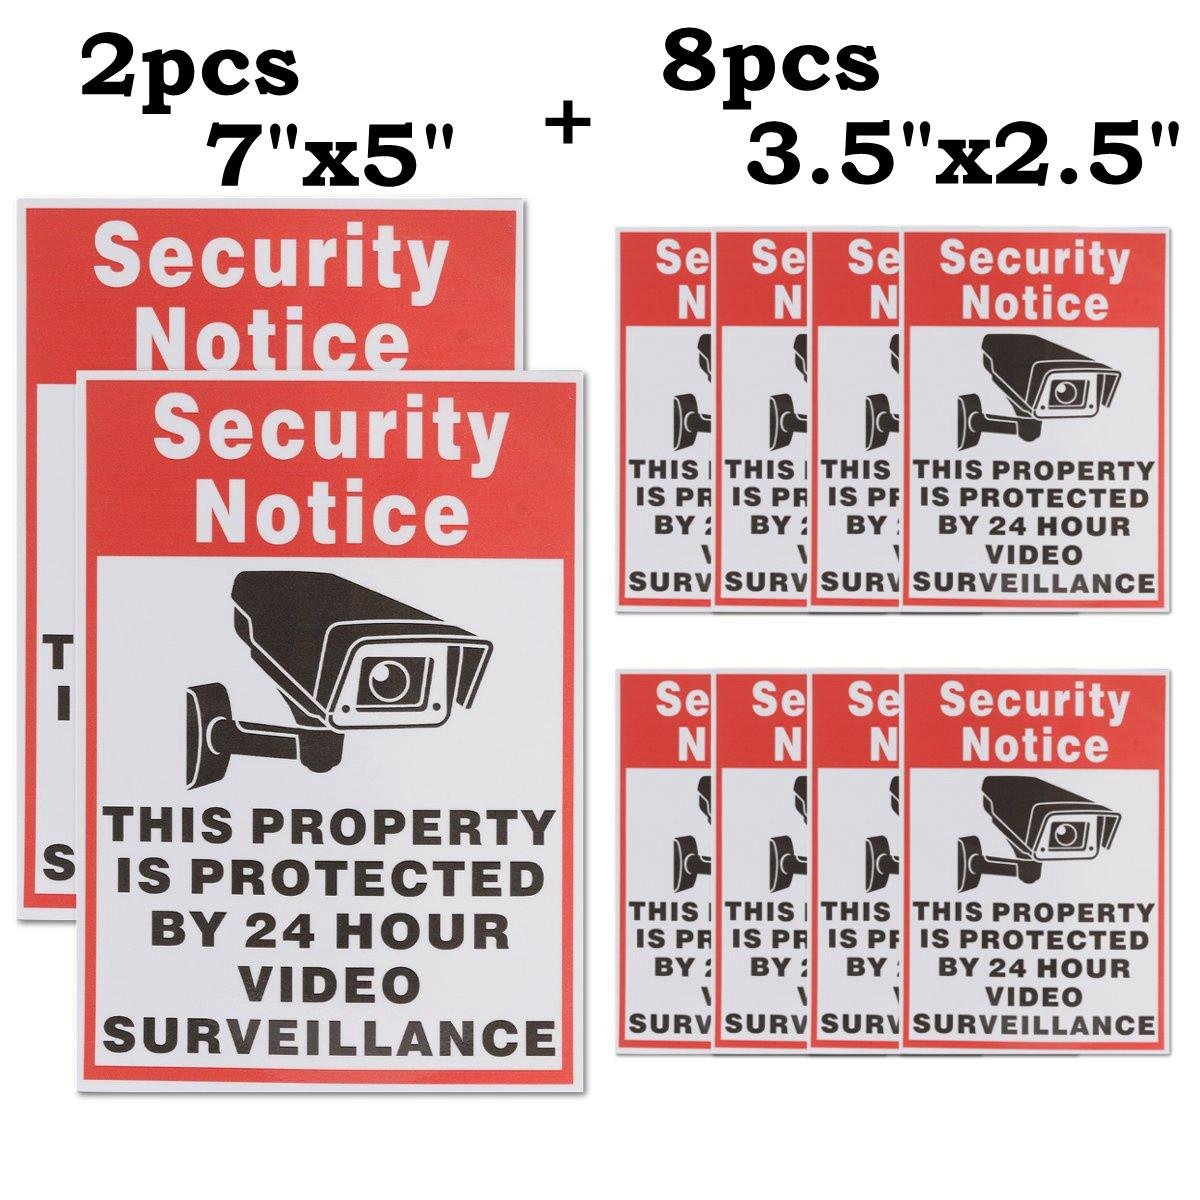 Safurance 10pcs/lot Waterproof Sunscreen PVC Home CCTV Video Surveillance Security Camera Alarm Sticker Warning Decal Signs new safurance 10pcs lot waterproof sunscreen pvc home cctv video surveillance security camera alarm sticker warning decal signs